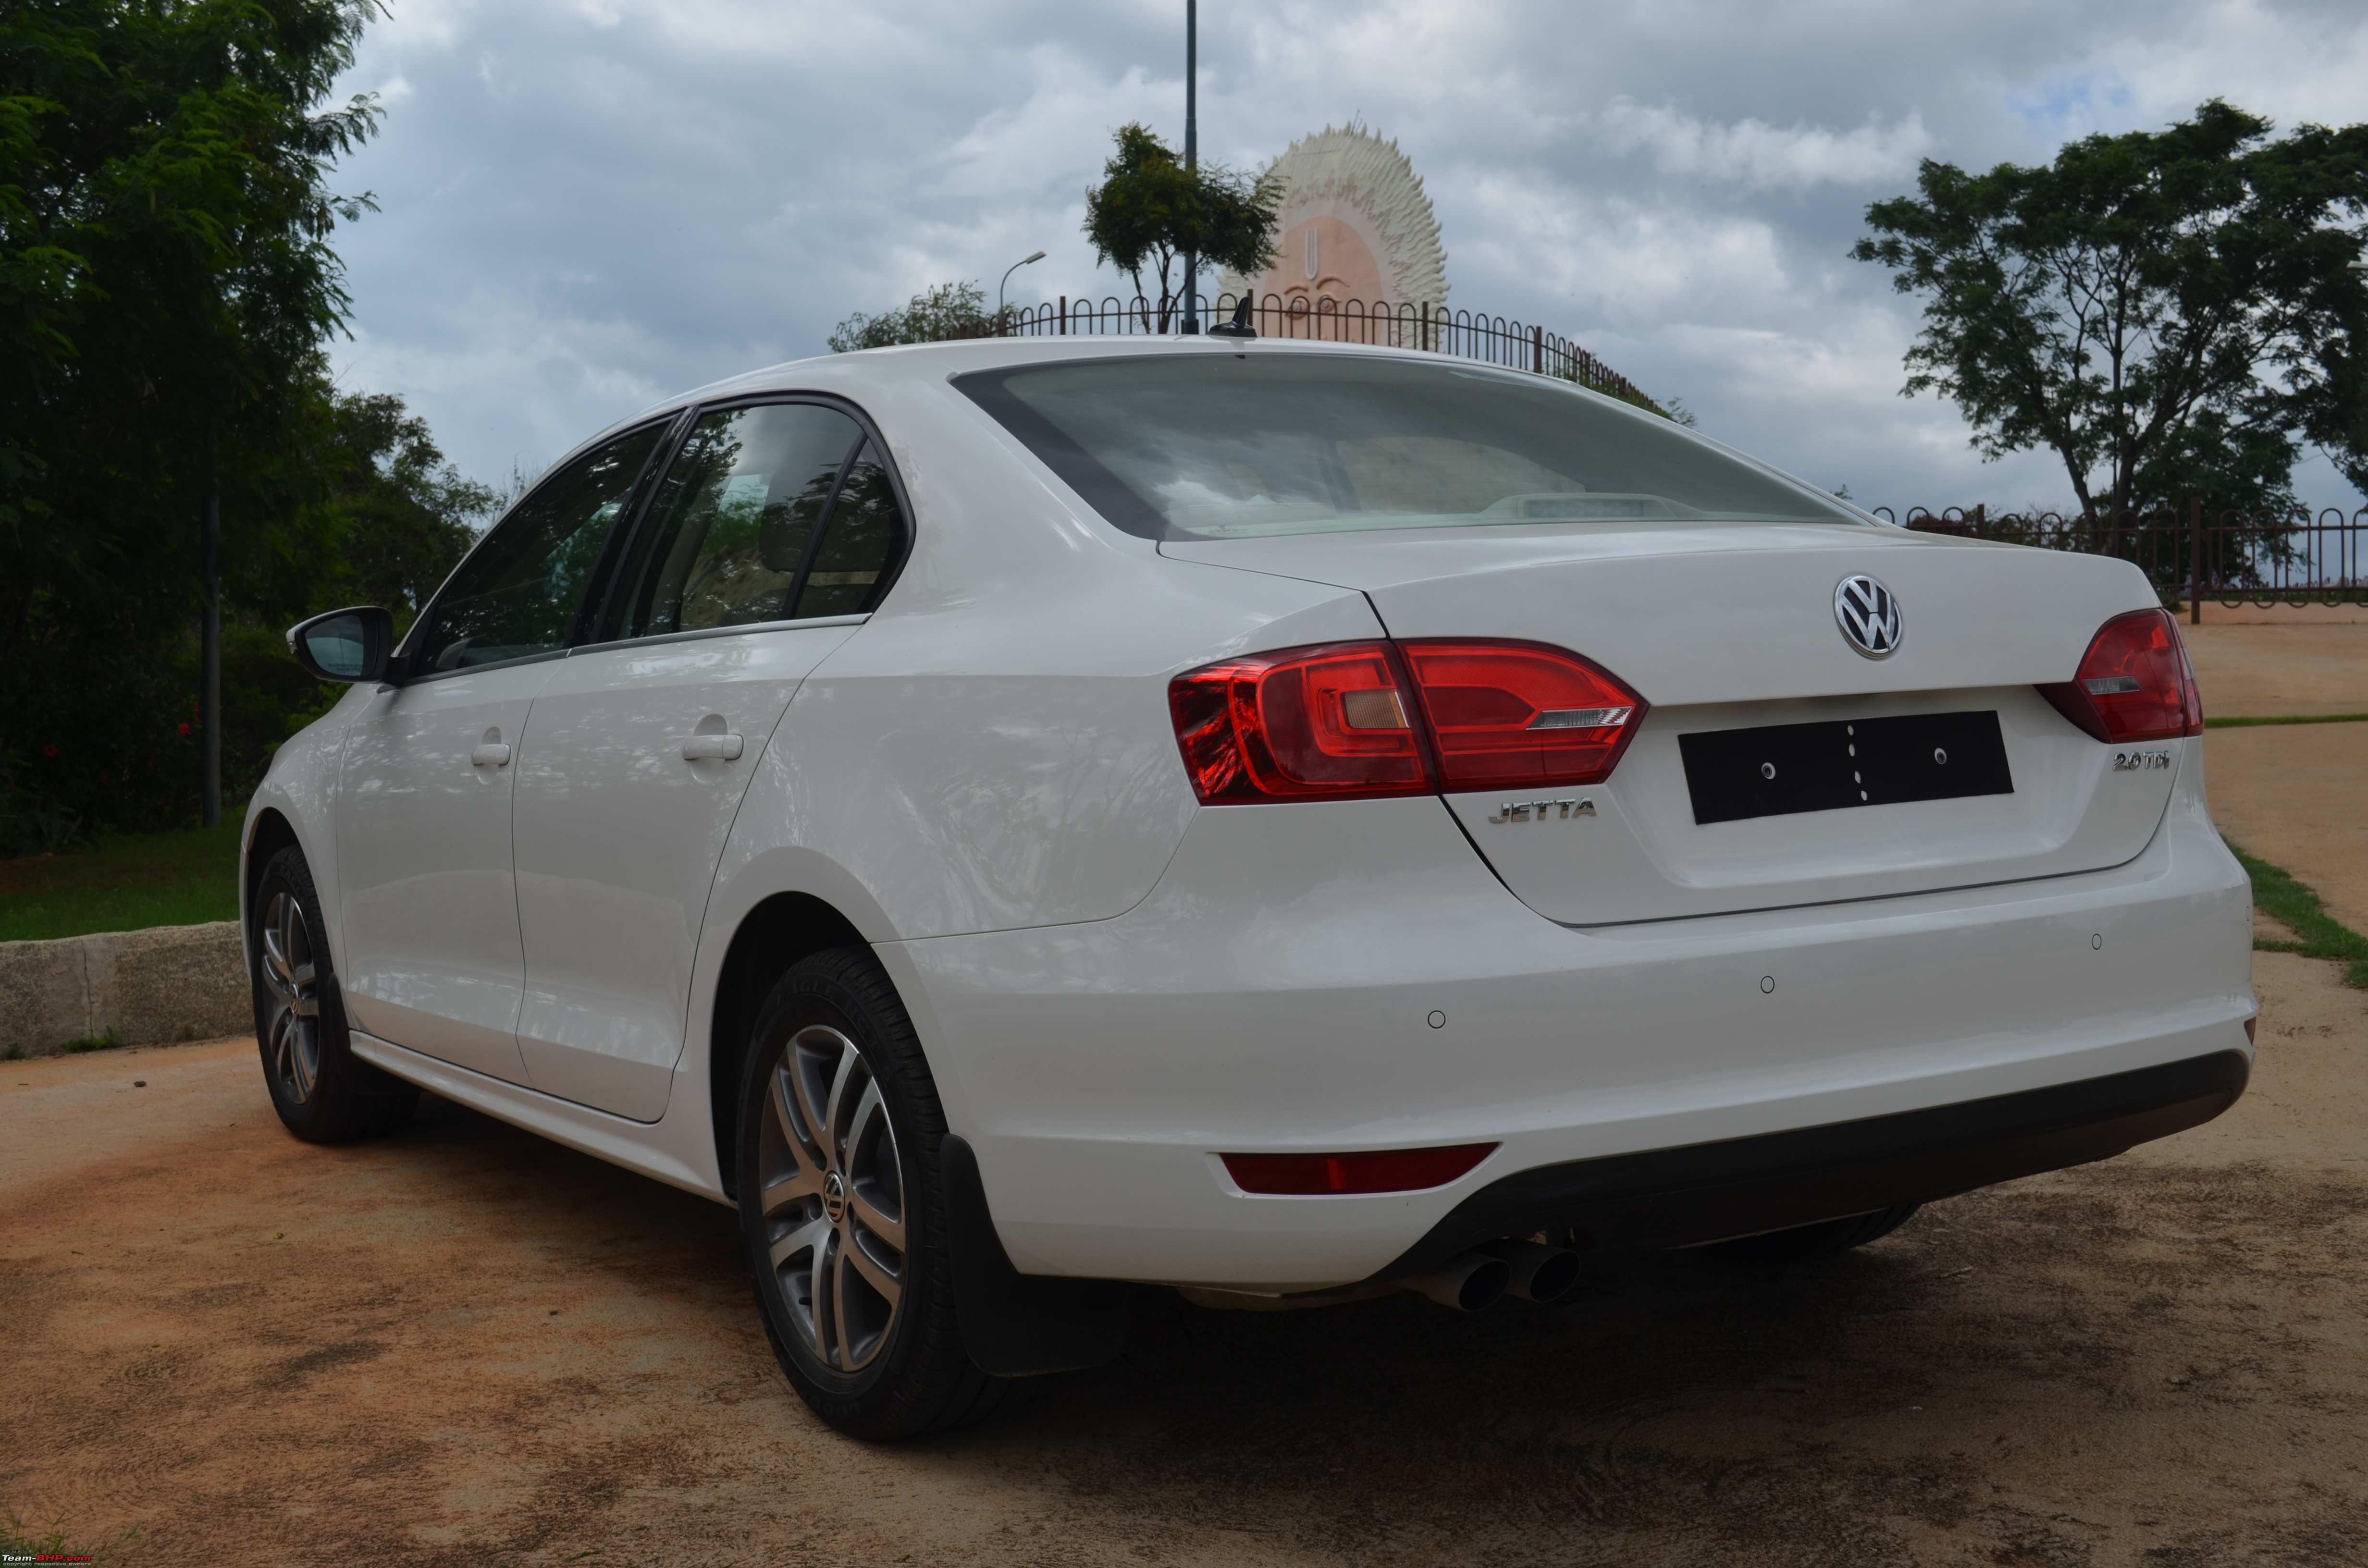 VW Jetta 2 0 TDI HL MT - Now with Bilsteins and Pete's Remap